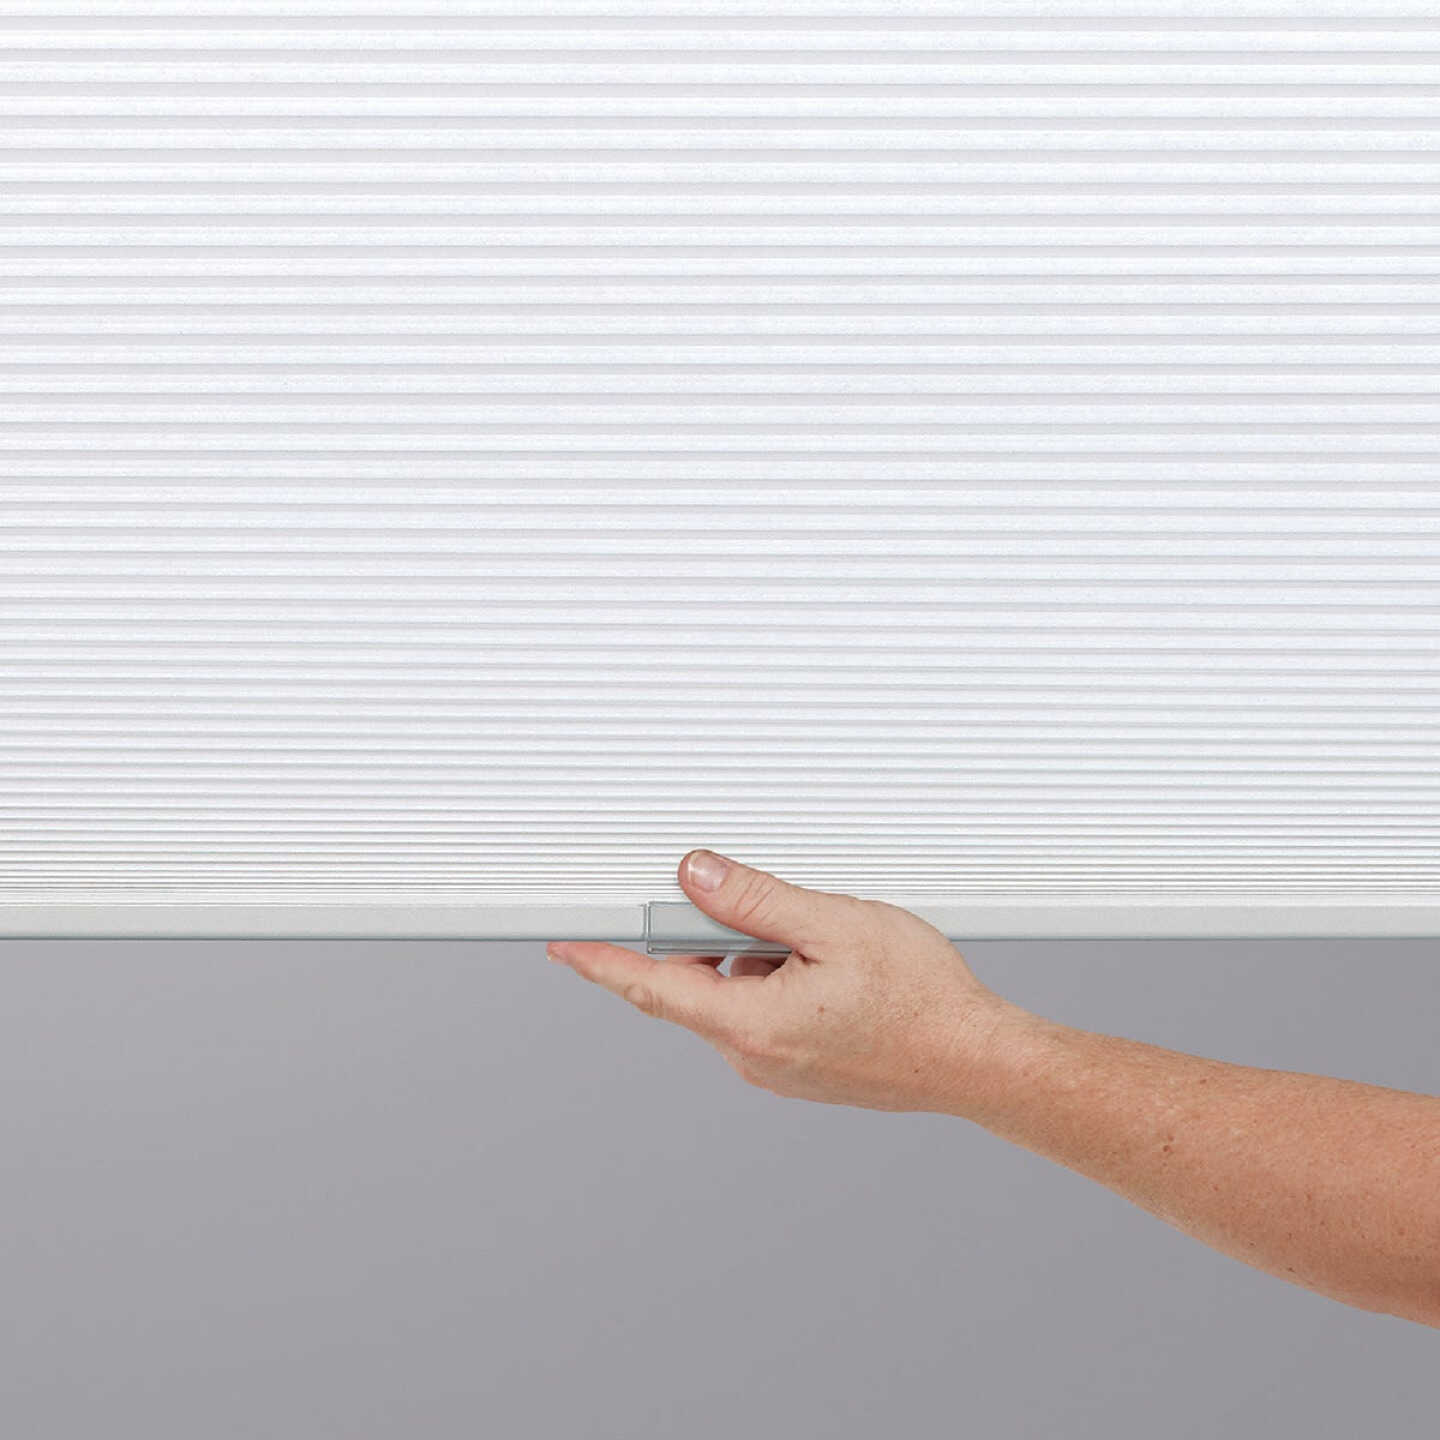 Home Impressions 1 In. Light Filtering Cellular White 34 In. x 72 In. Cordless Shade Image 2